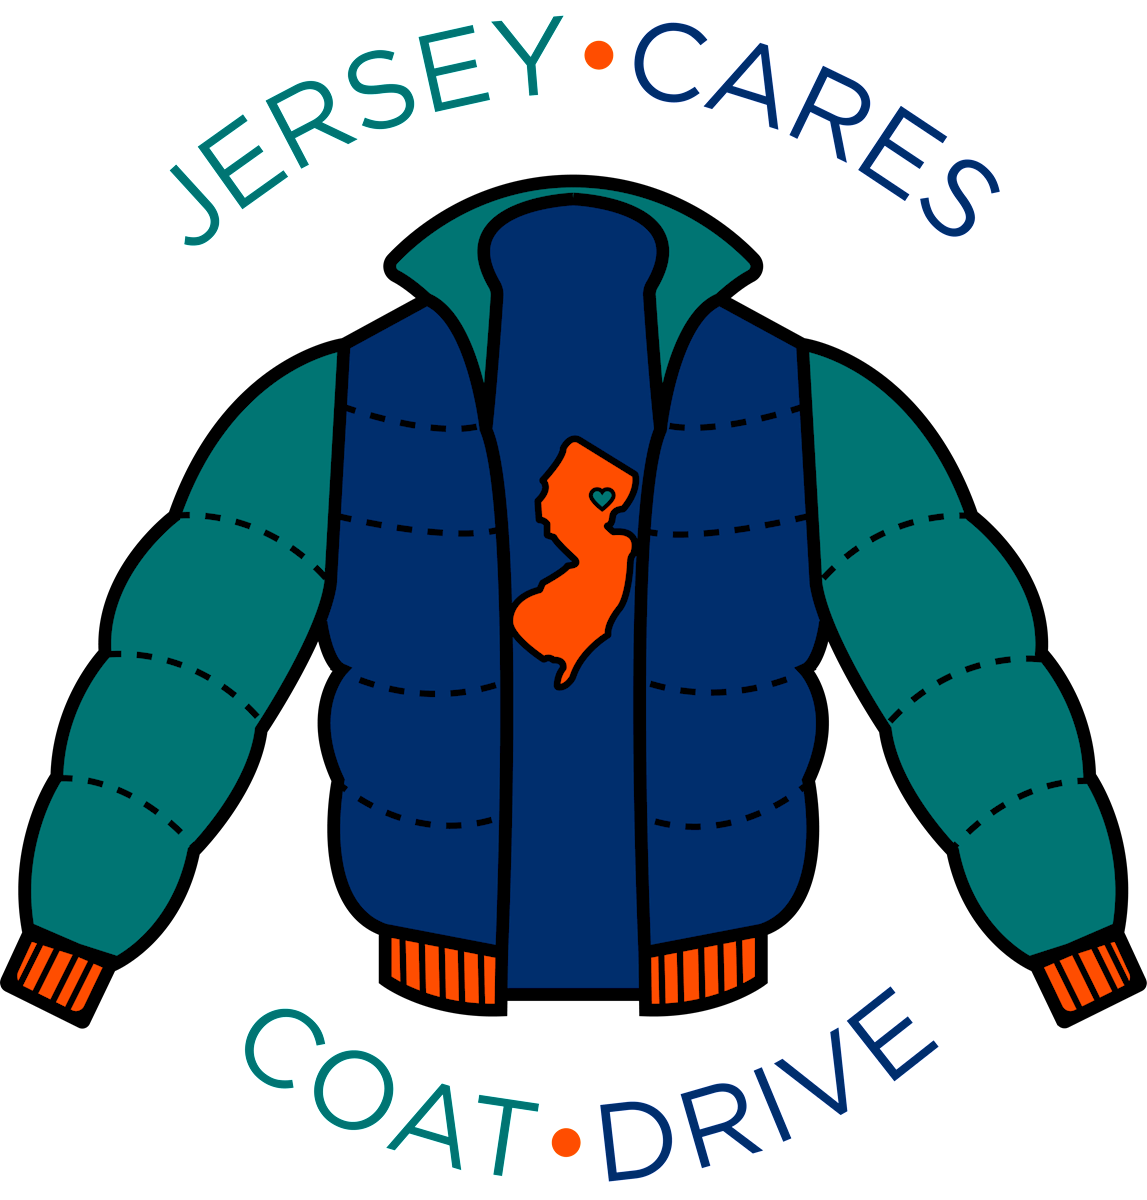 Oatmeal clipart warm. Jersey cares the coat